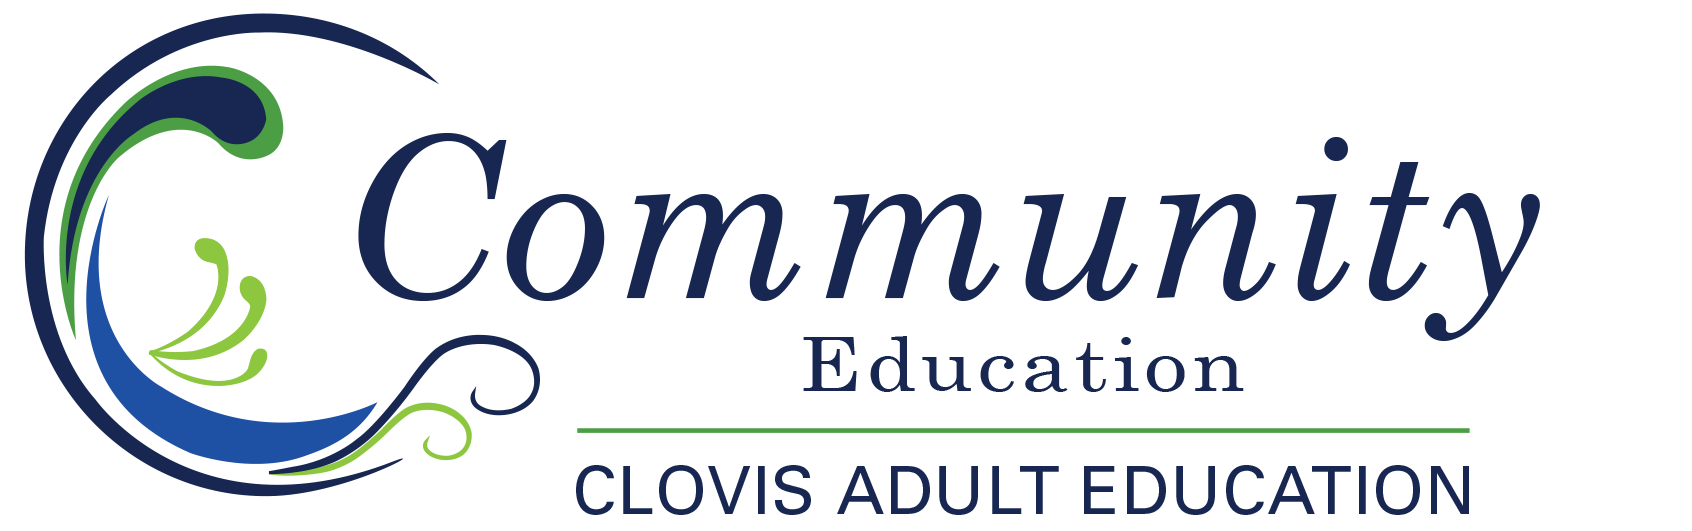 Clovis Community Education